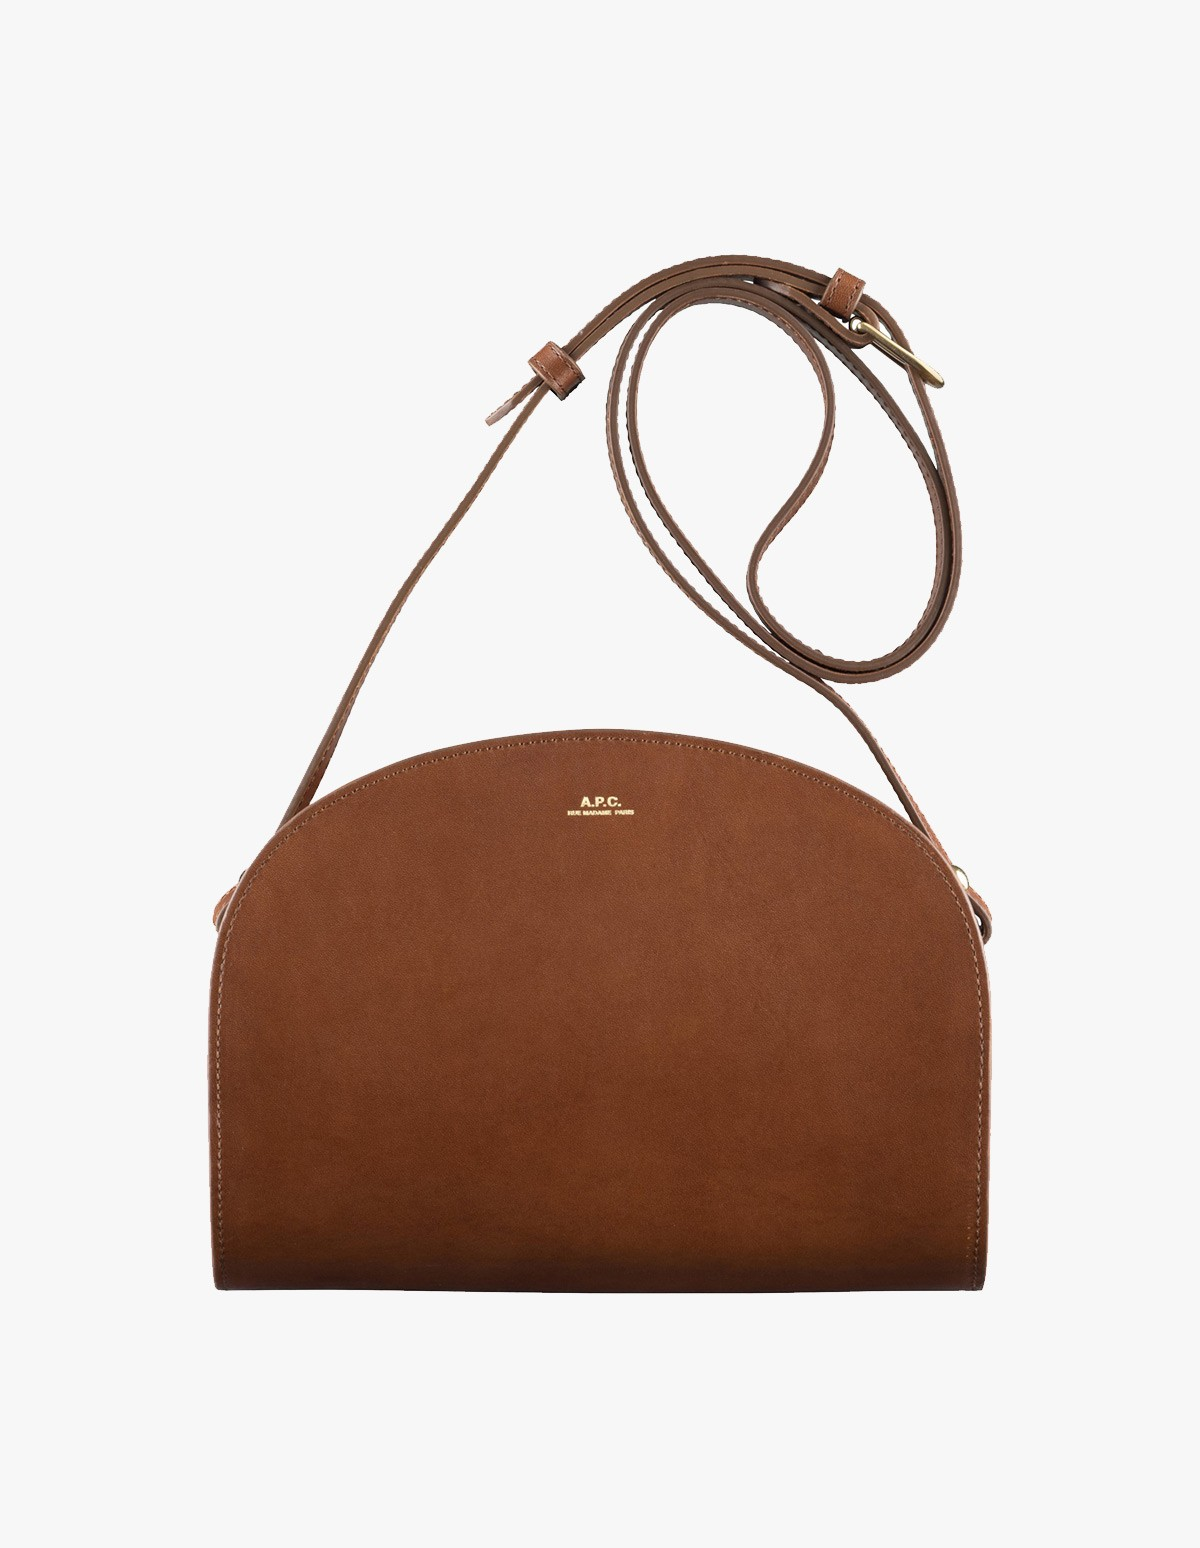 A.P.C. Sac Demi-Lune in Noisette